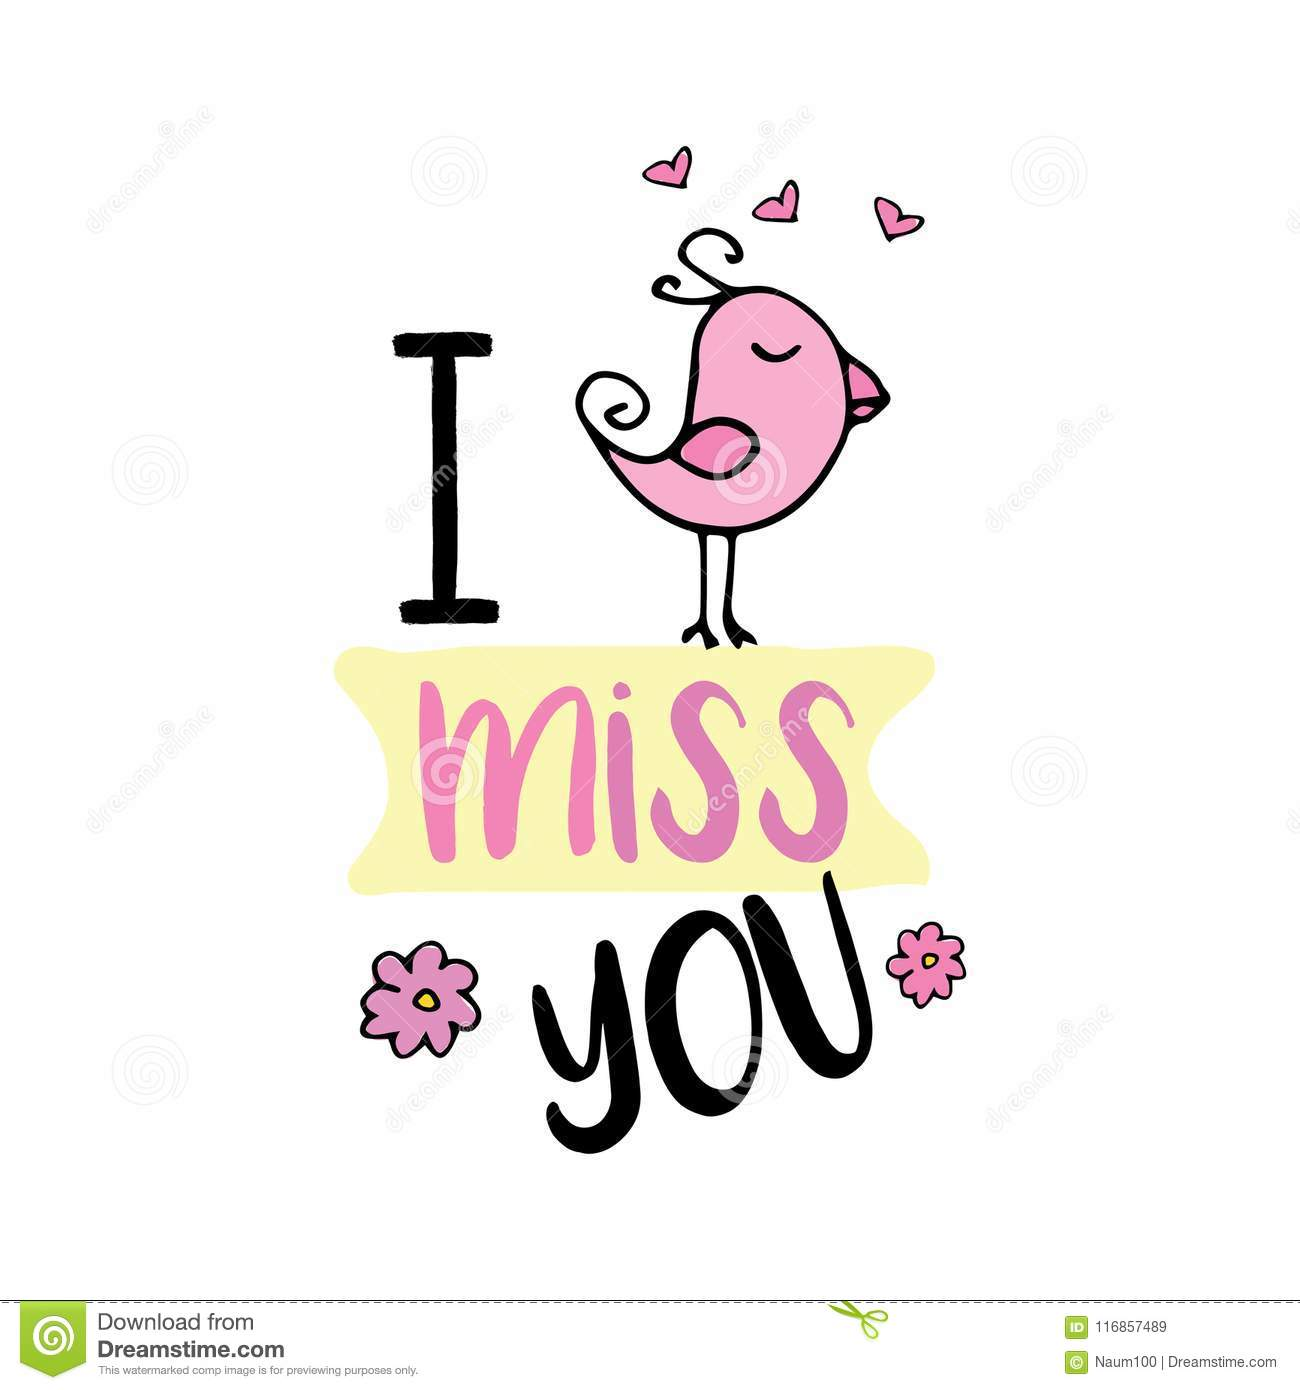 I Miss You Cute Design With Doodle Birdisolated On White Backg